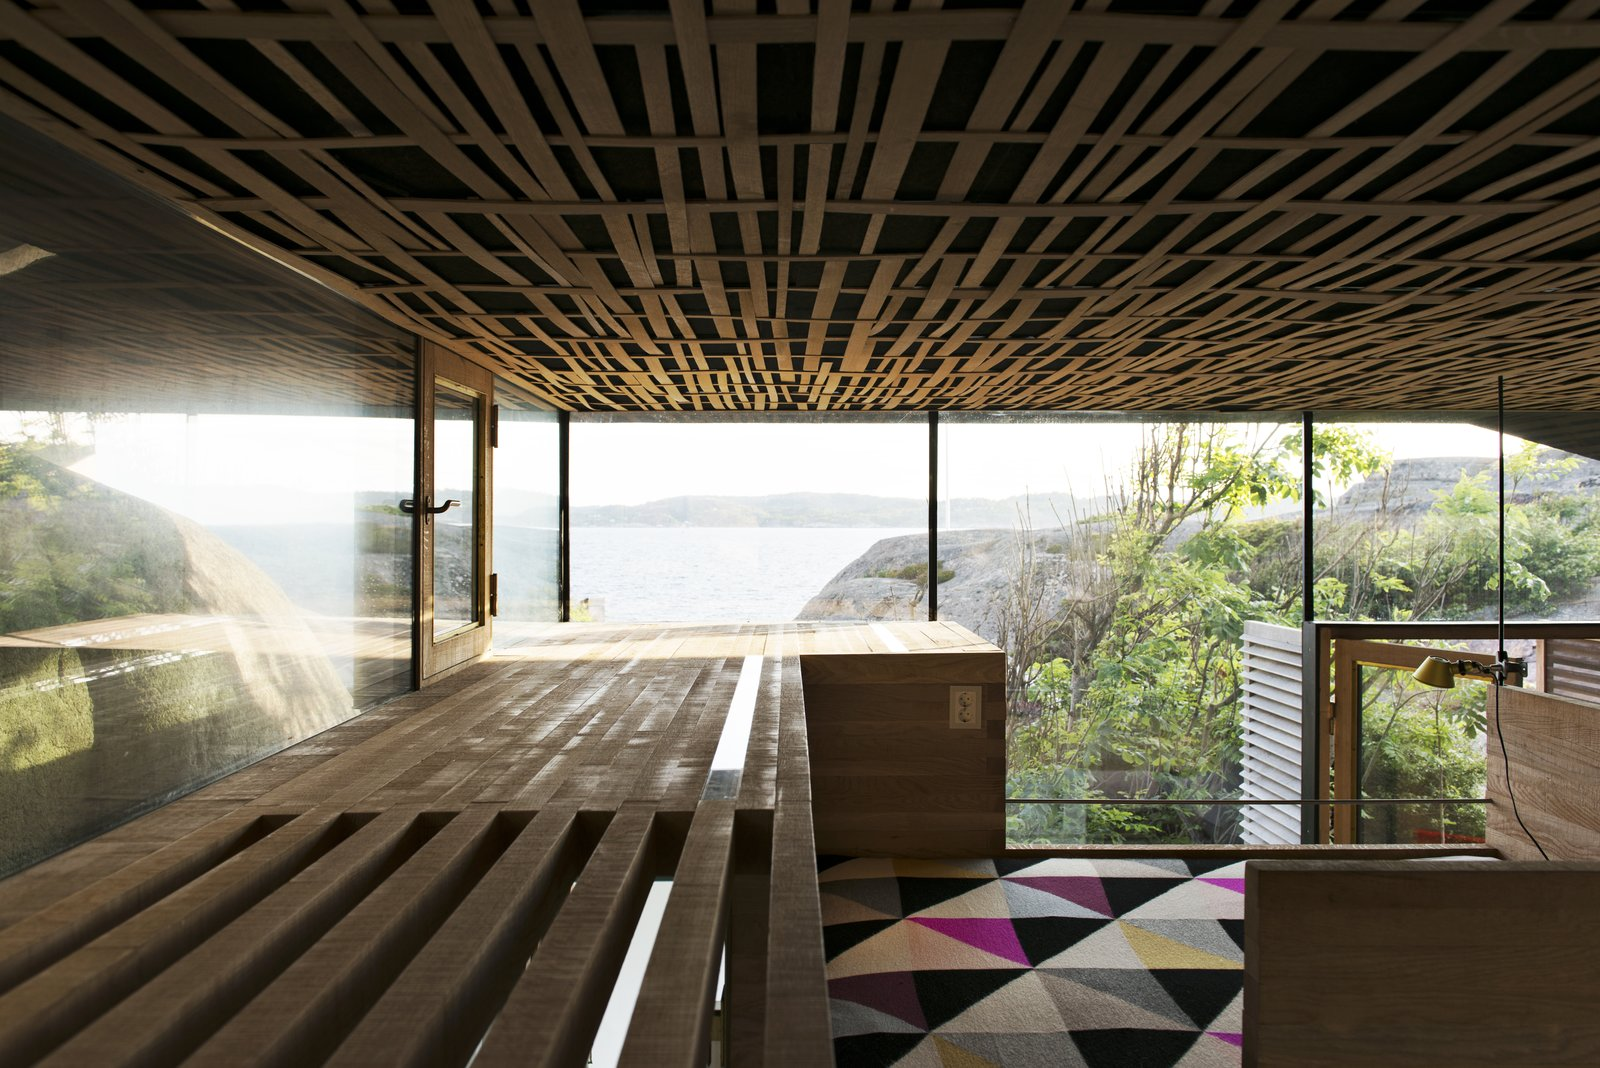 Bedroom, Bench, and Bed The interior walls are solid 50/50mm oak layered with a natural sawn texture, while the acoustic ceiling is covered with woven oak strips.   Photo 8 of 8 in This Norwegian Cabin's Roof Doubles as an Observation Deck